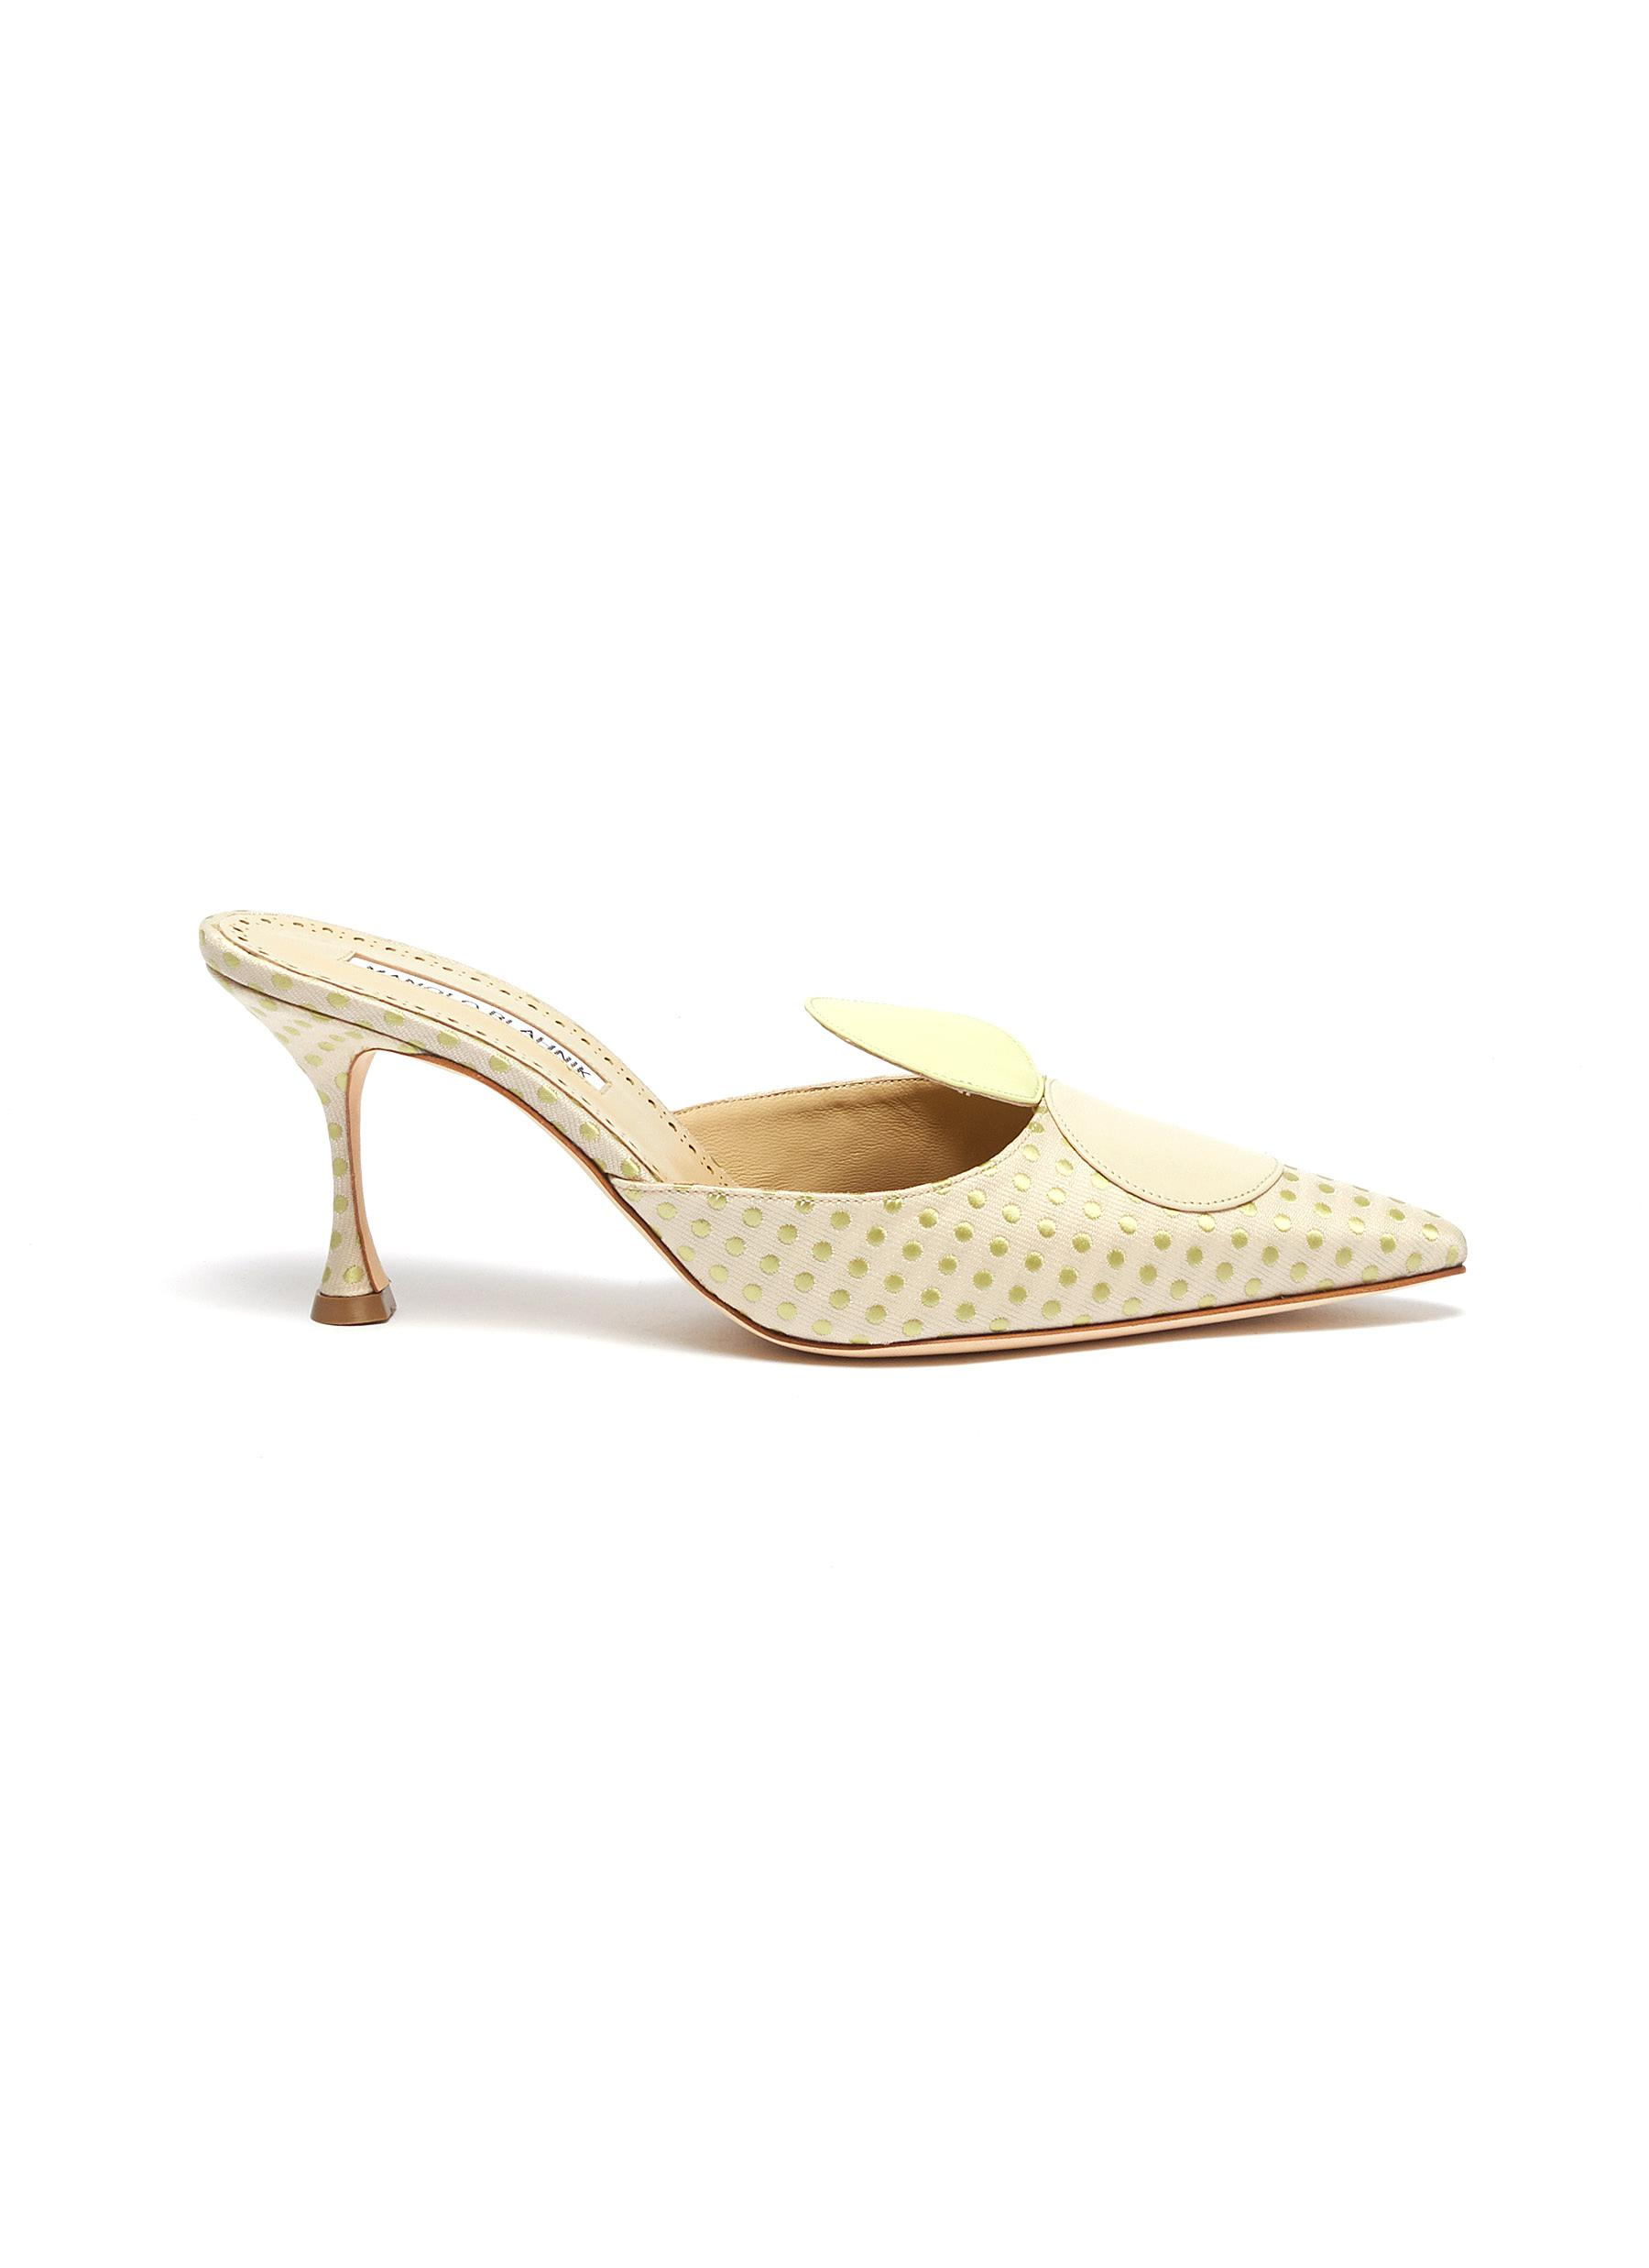 Gloden 70 circle polka dot mules by Manolo Blahnik